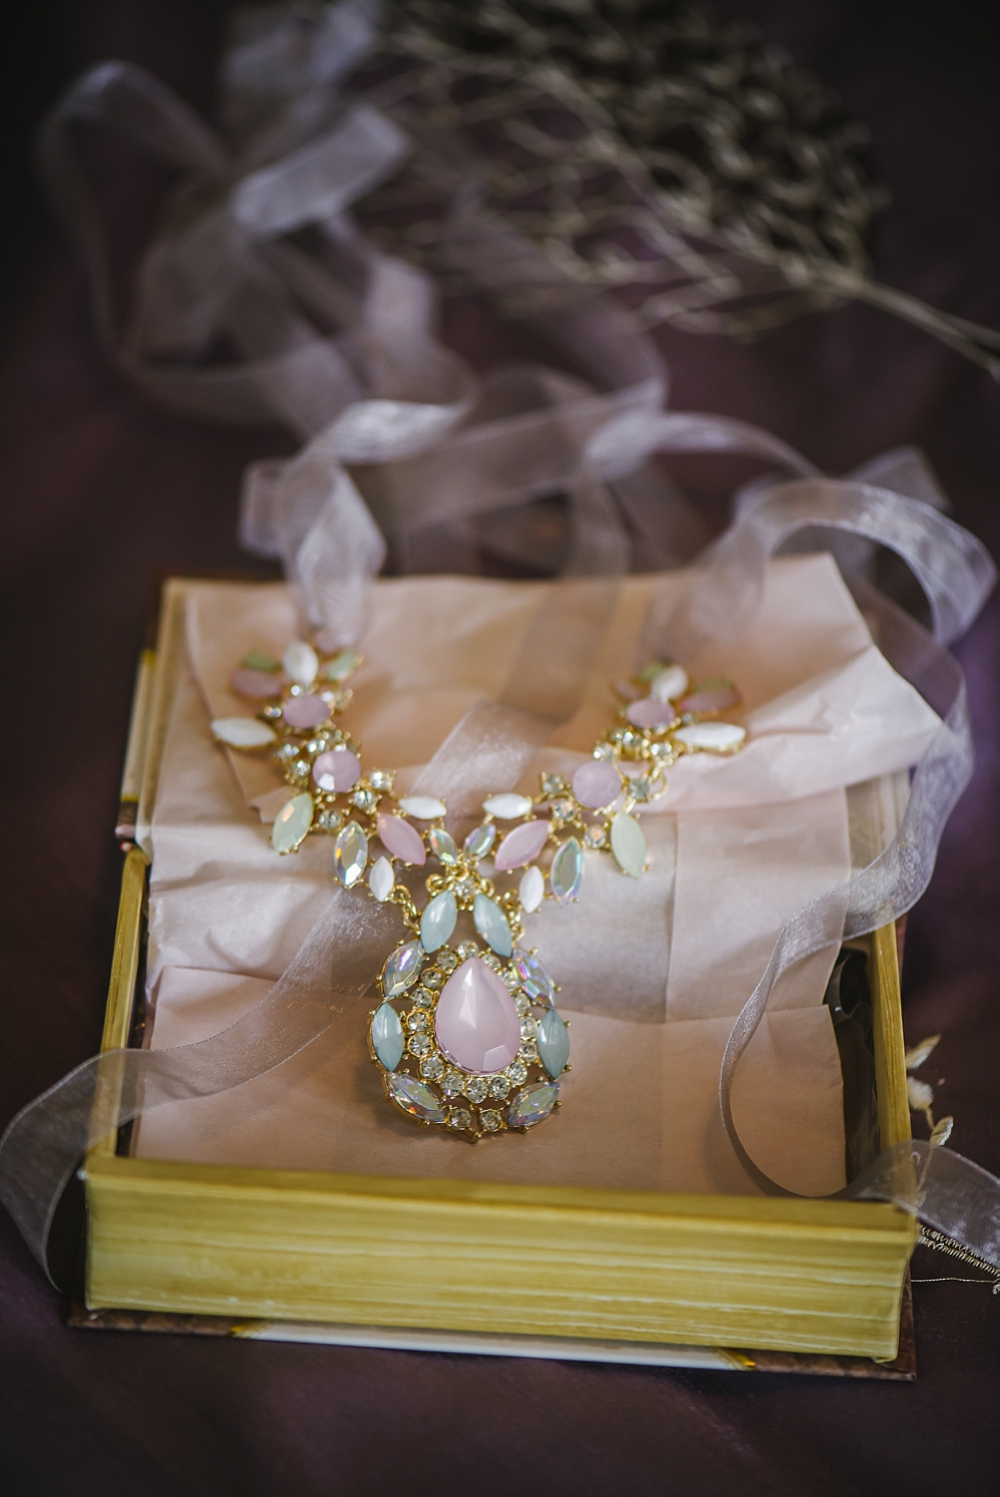 I'm in love with these gorgeous necklaces Hannah found for all her lovely bridesmaids!